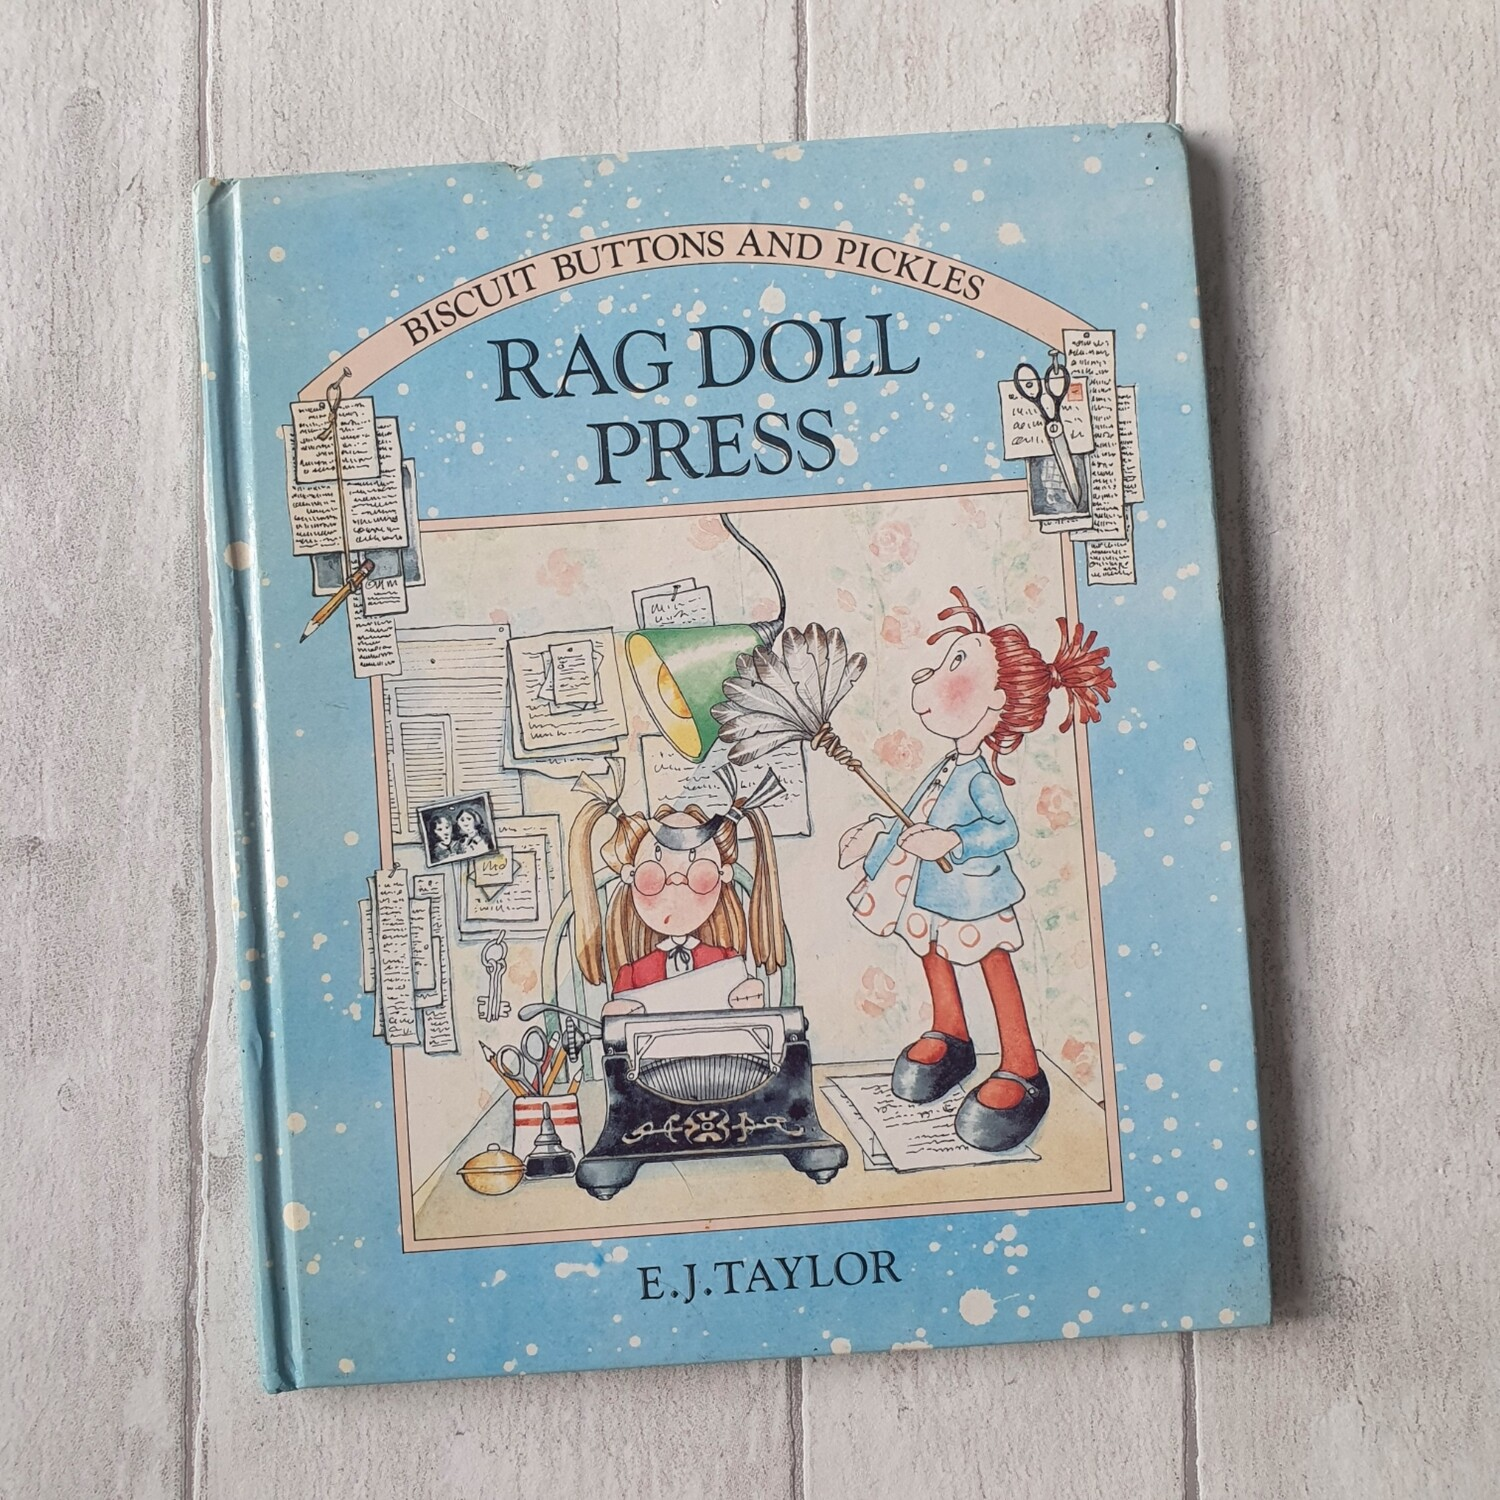 Rag Doll Press - Biscuit Buttons and Pickles